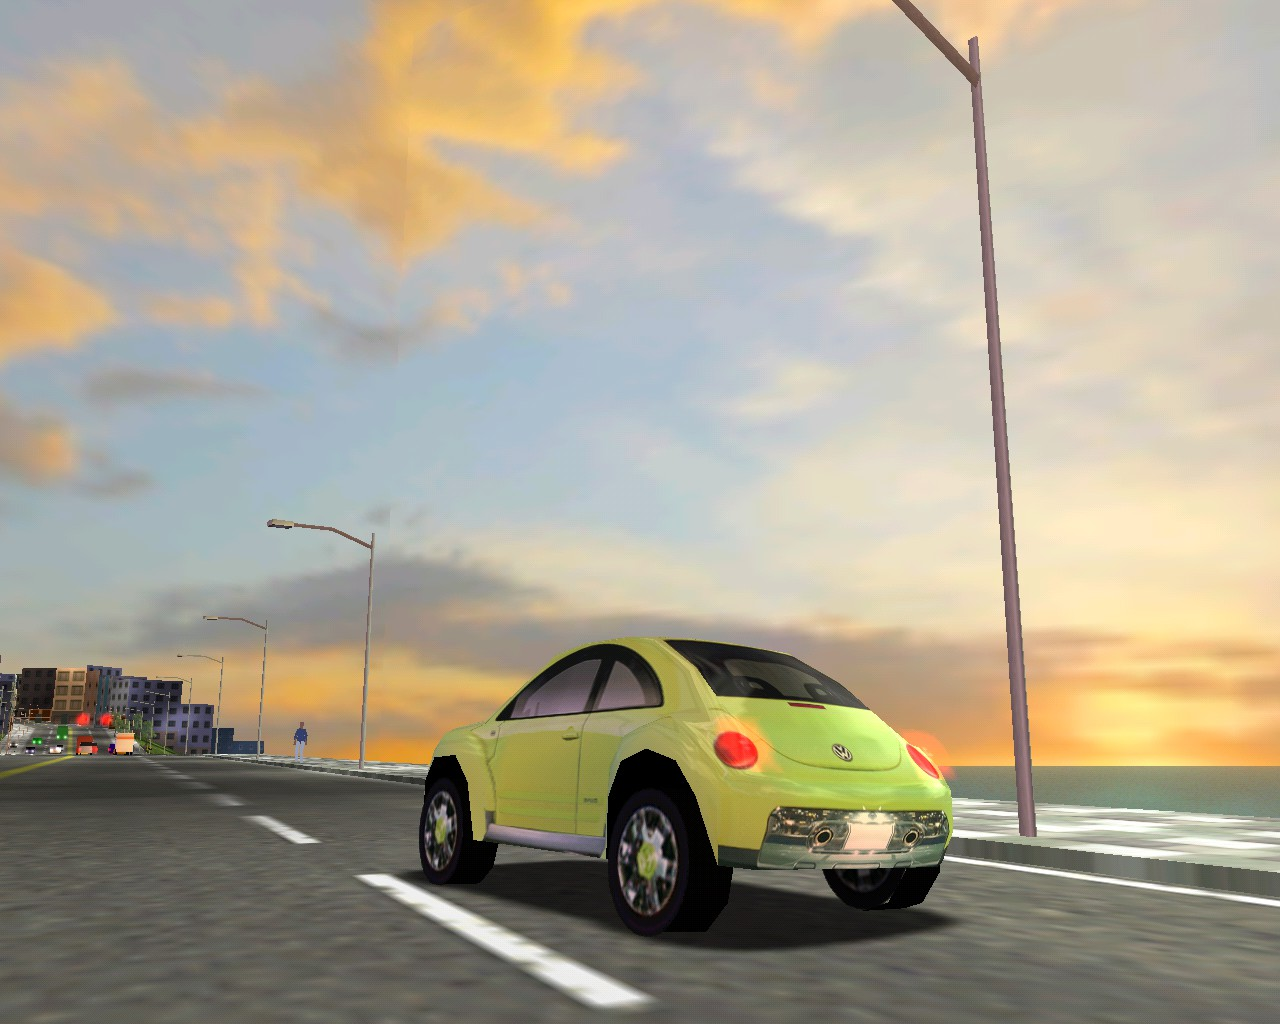 vw new beetle dune midtown madness 2 wiki fandom powered by wikia. Black Bedroom Furniture Sets. Home Design Ideas